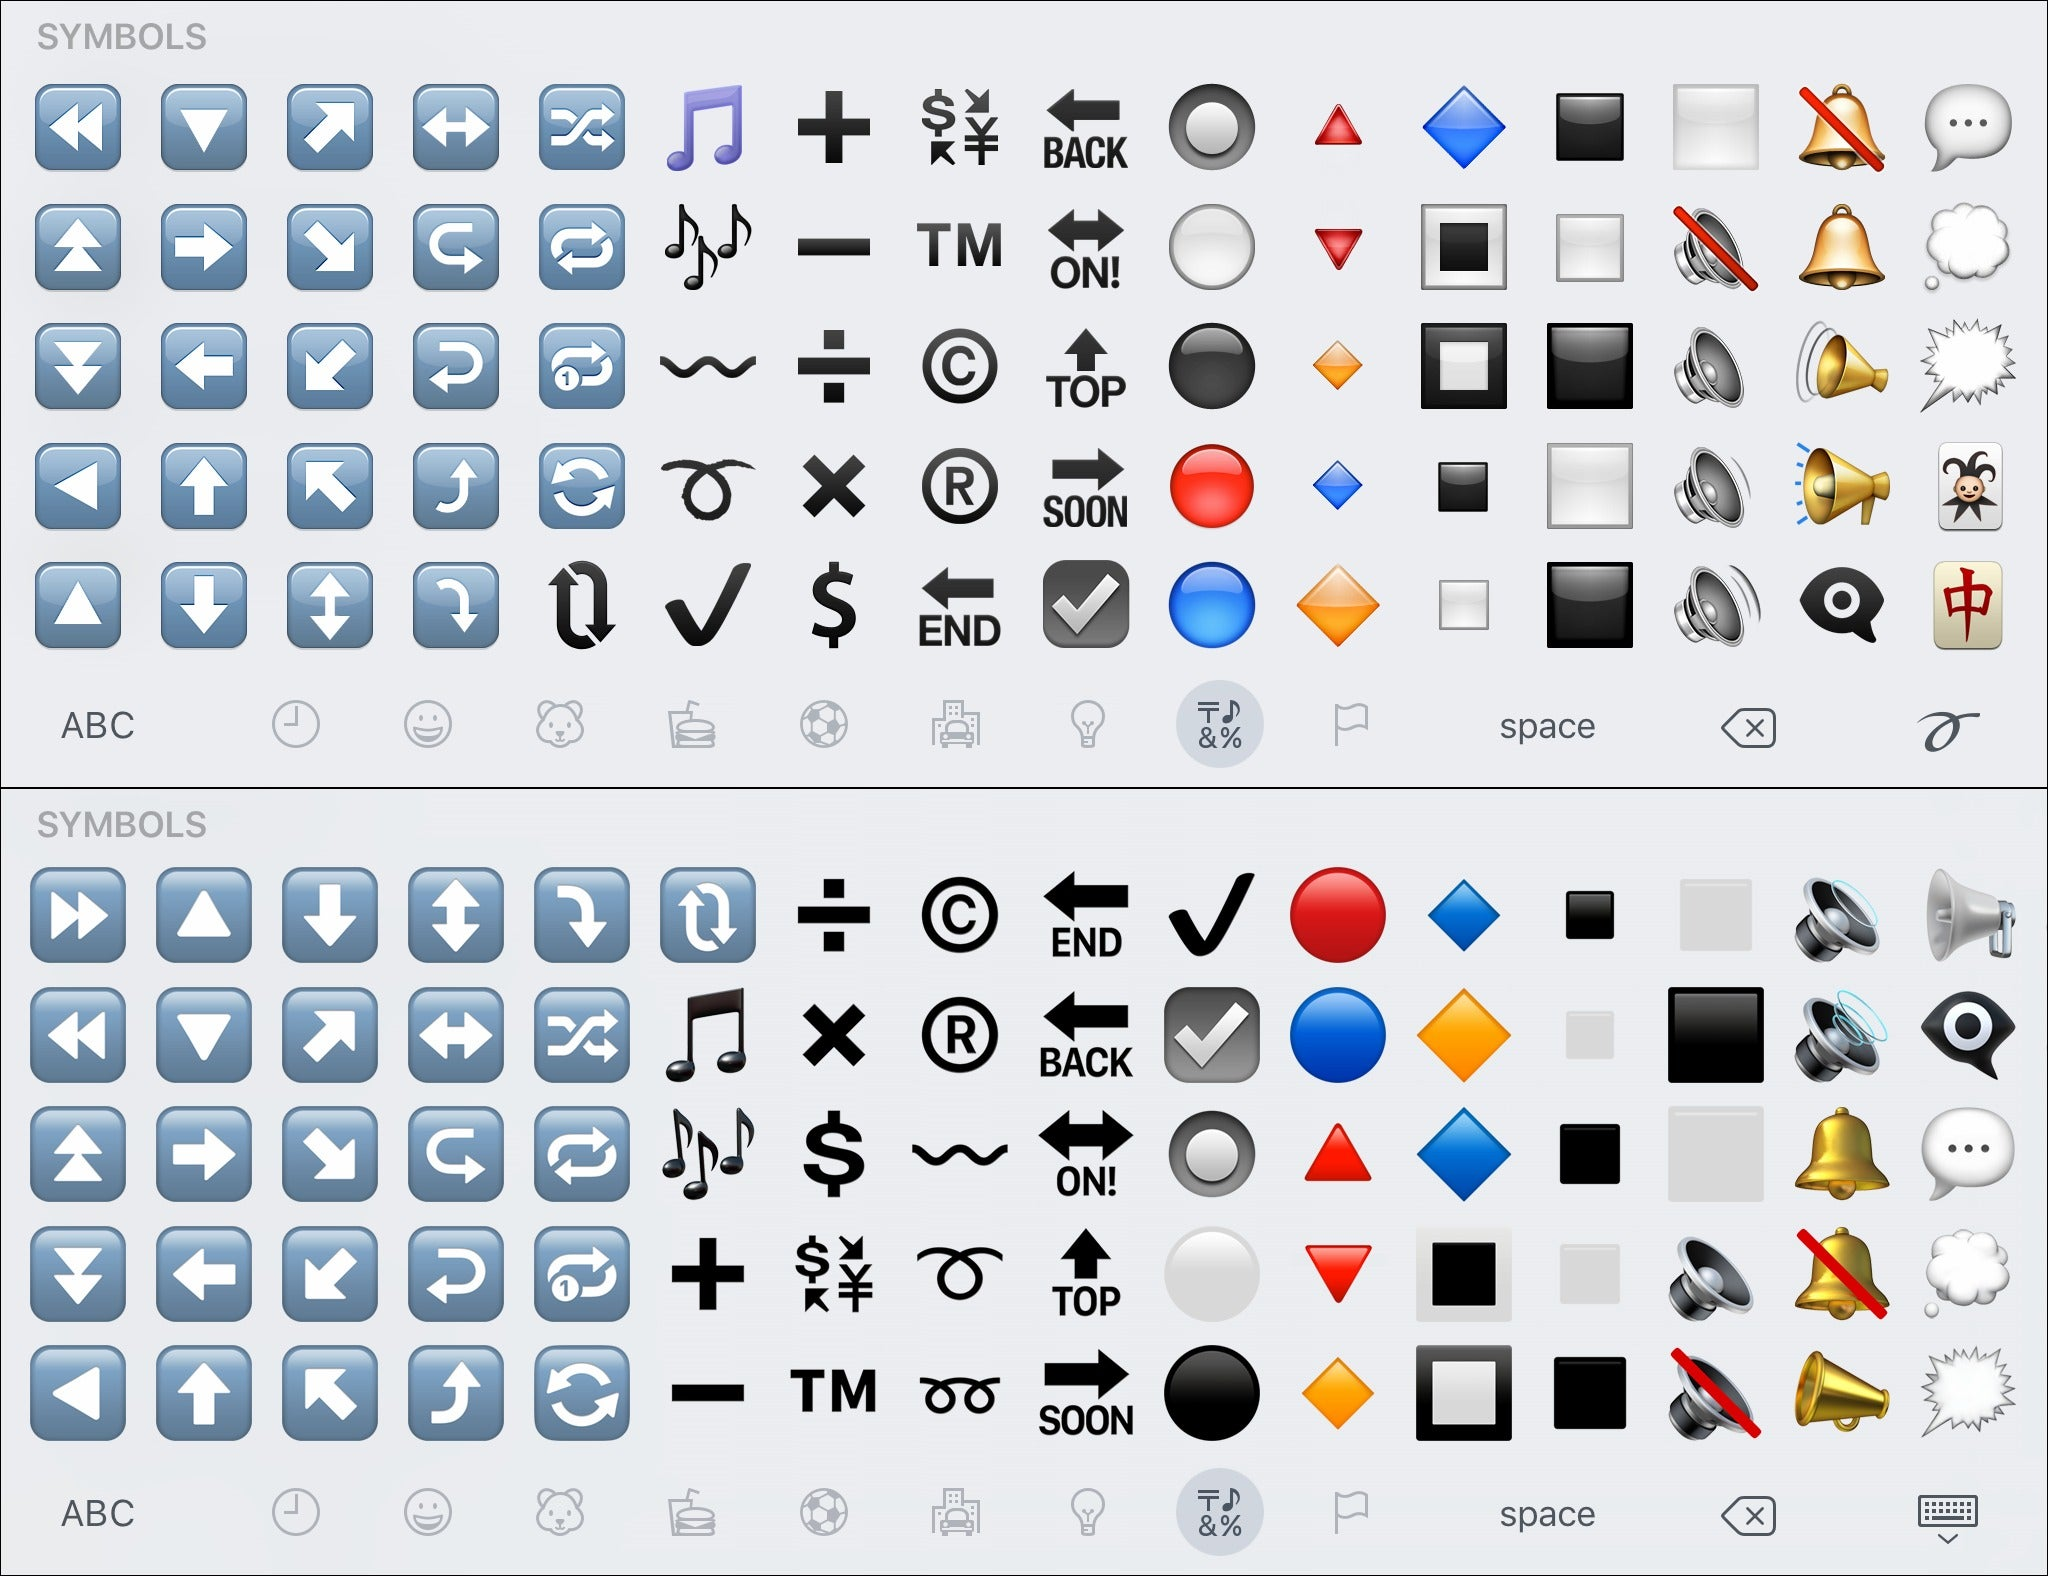 Check out every single new emoji in ios 102 macworld symbols page 3 biocorpaavc Image collections